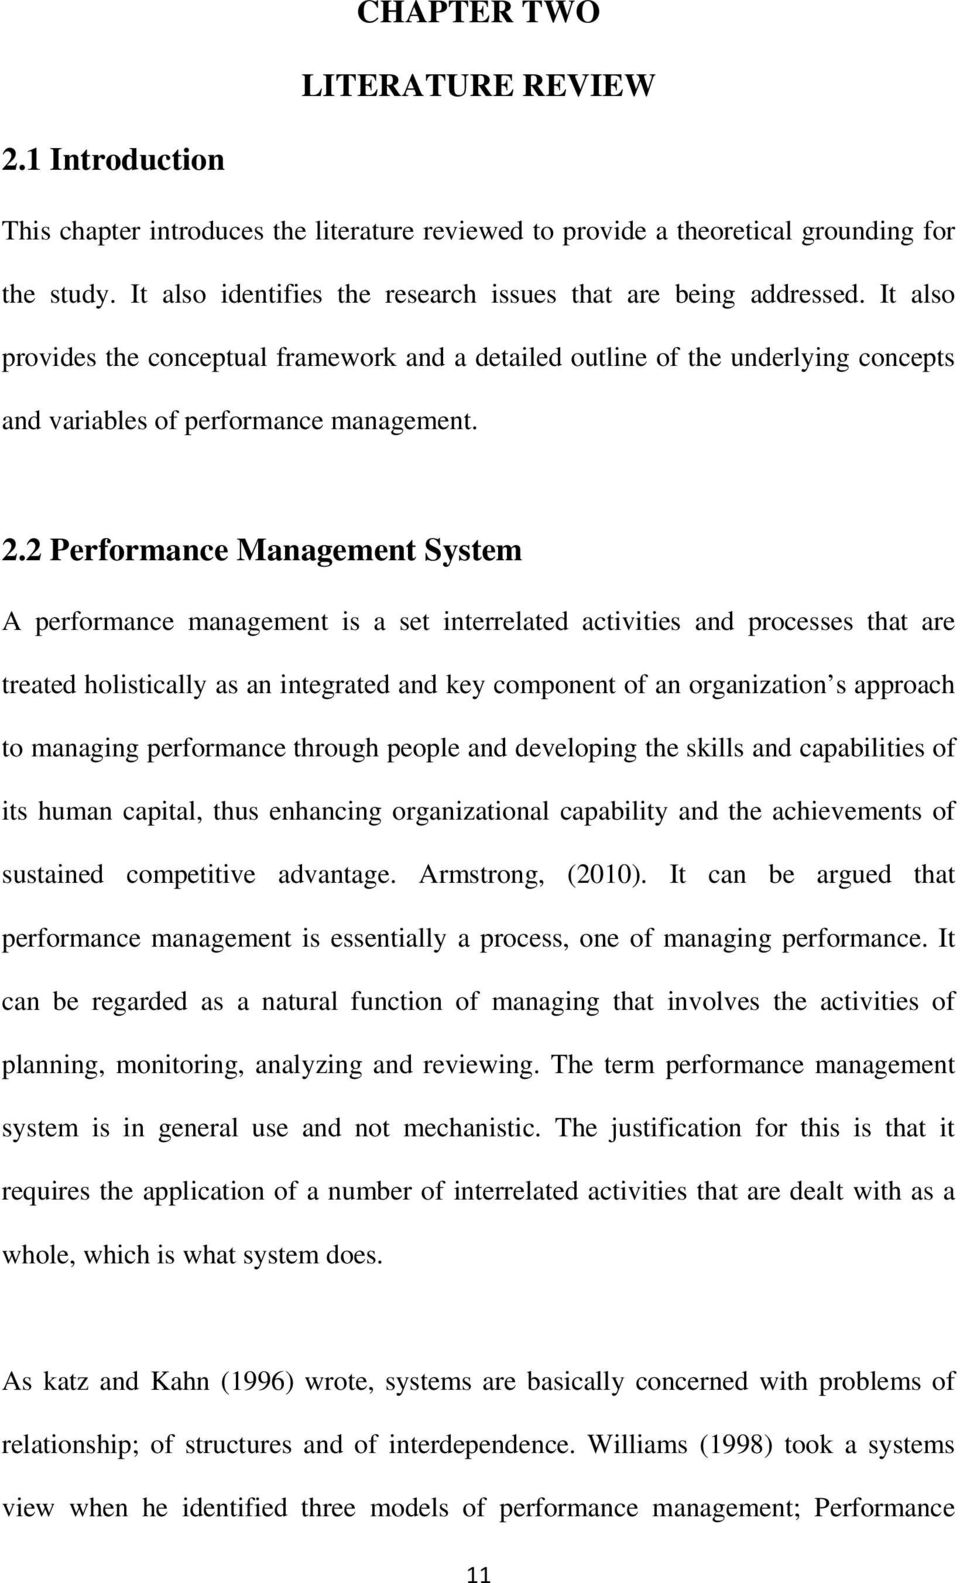 2 Performance Management System A performance management is a set interrelated activities and processes that are treated holistically as an integrated and key component of an organization s approach